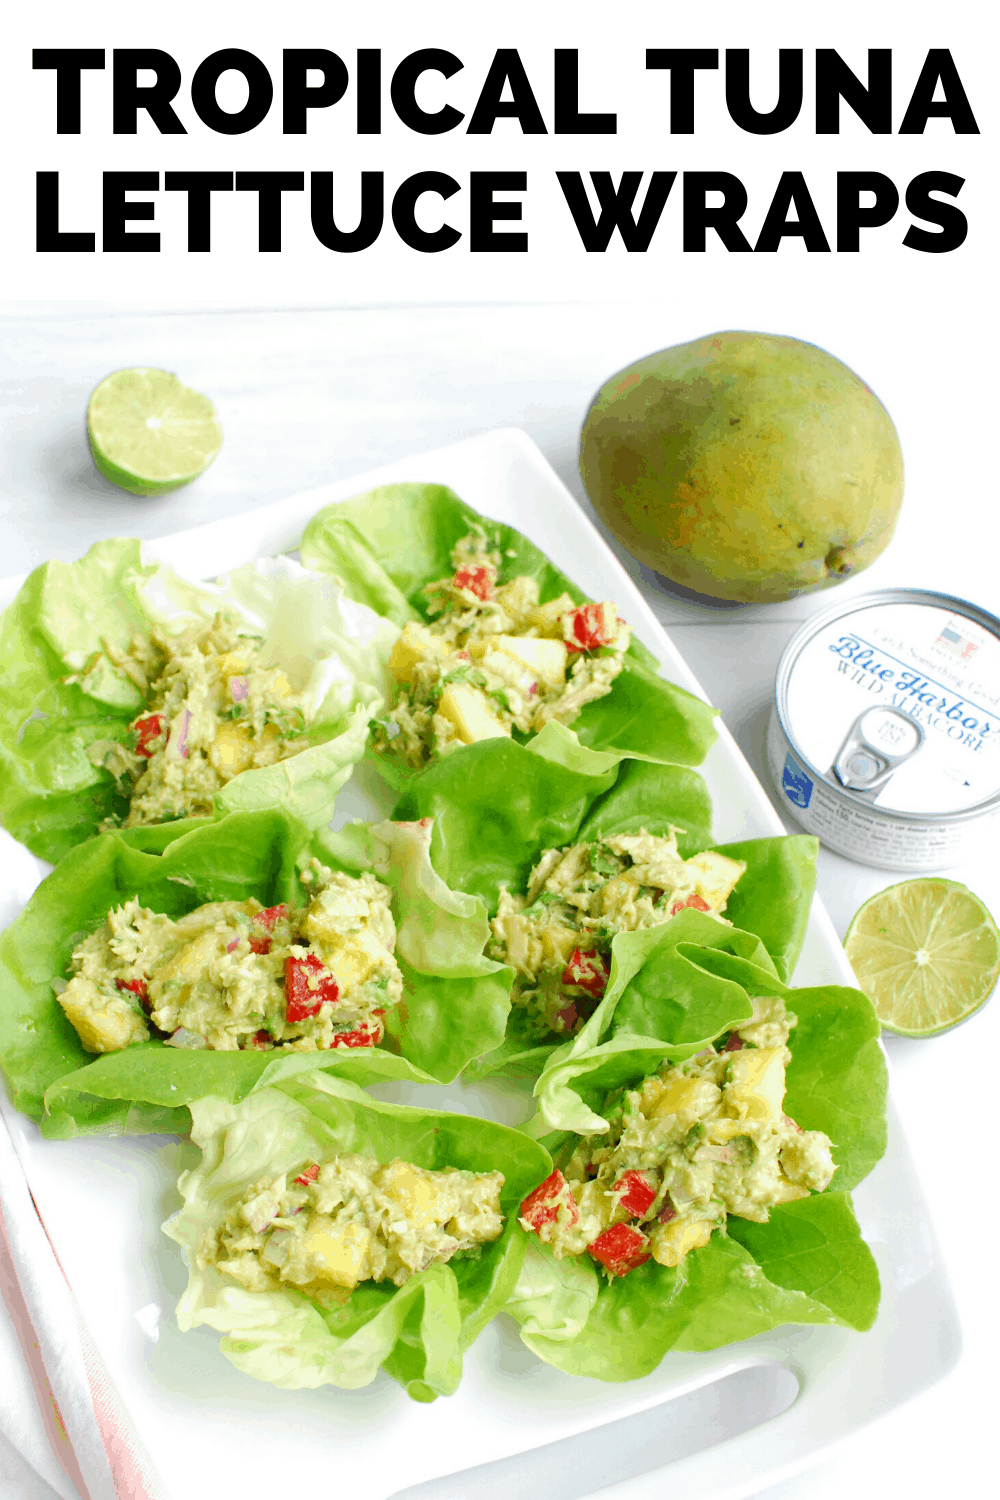 several tropical tuna lettuce wraps on a white serving platter next to a can of tuna and a mango